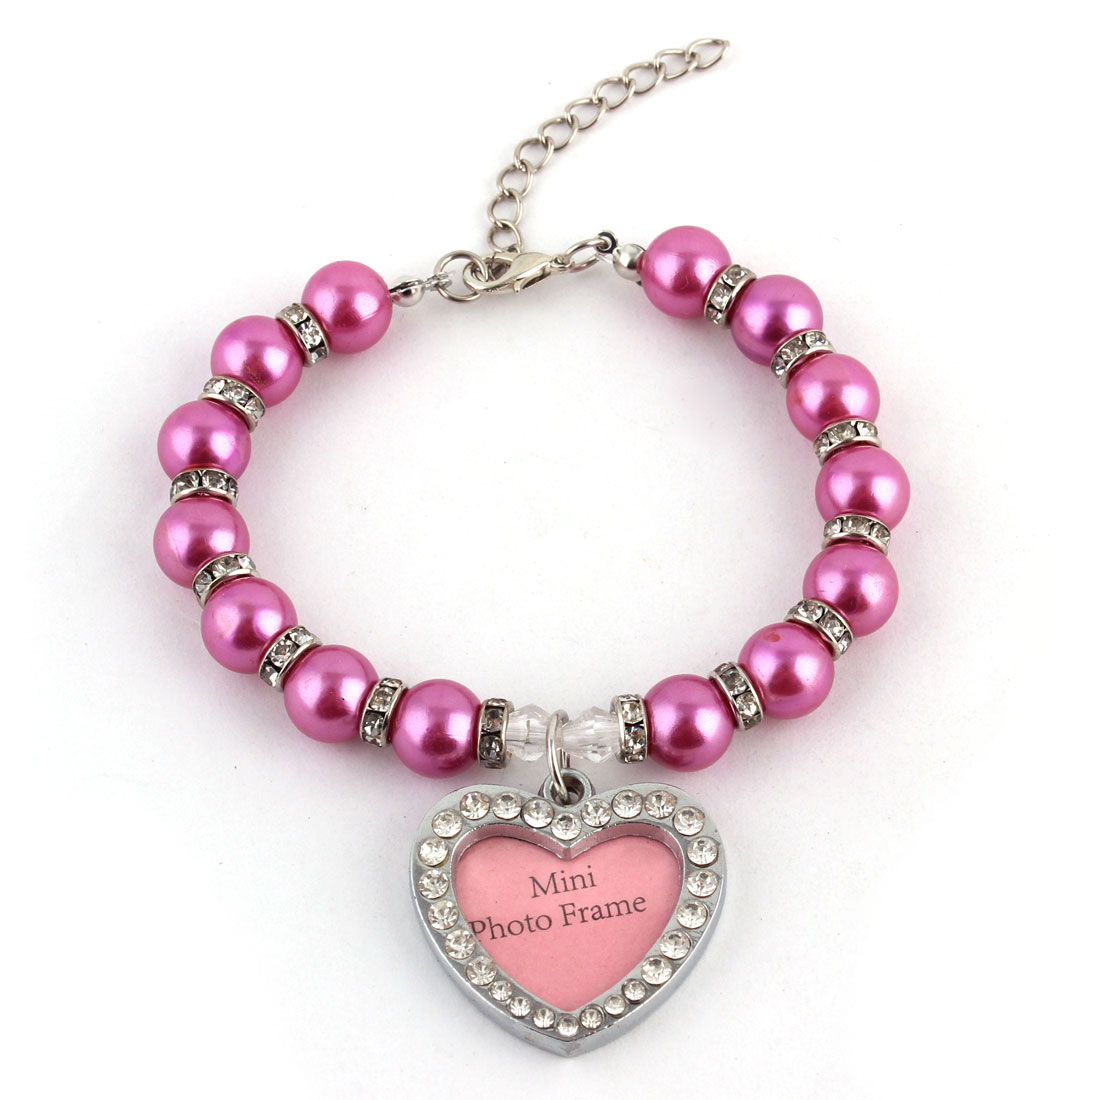 Puppy Plastic Jewelry Imitation Pearl Linked Heart Shaped Pendant Decor Necklace